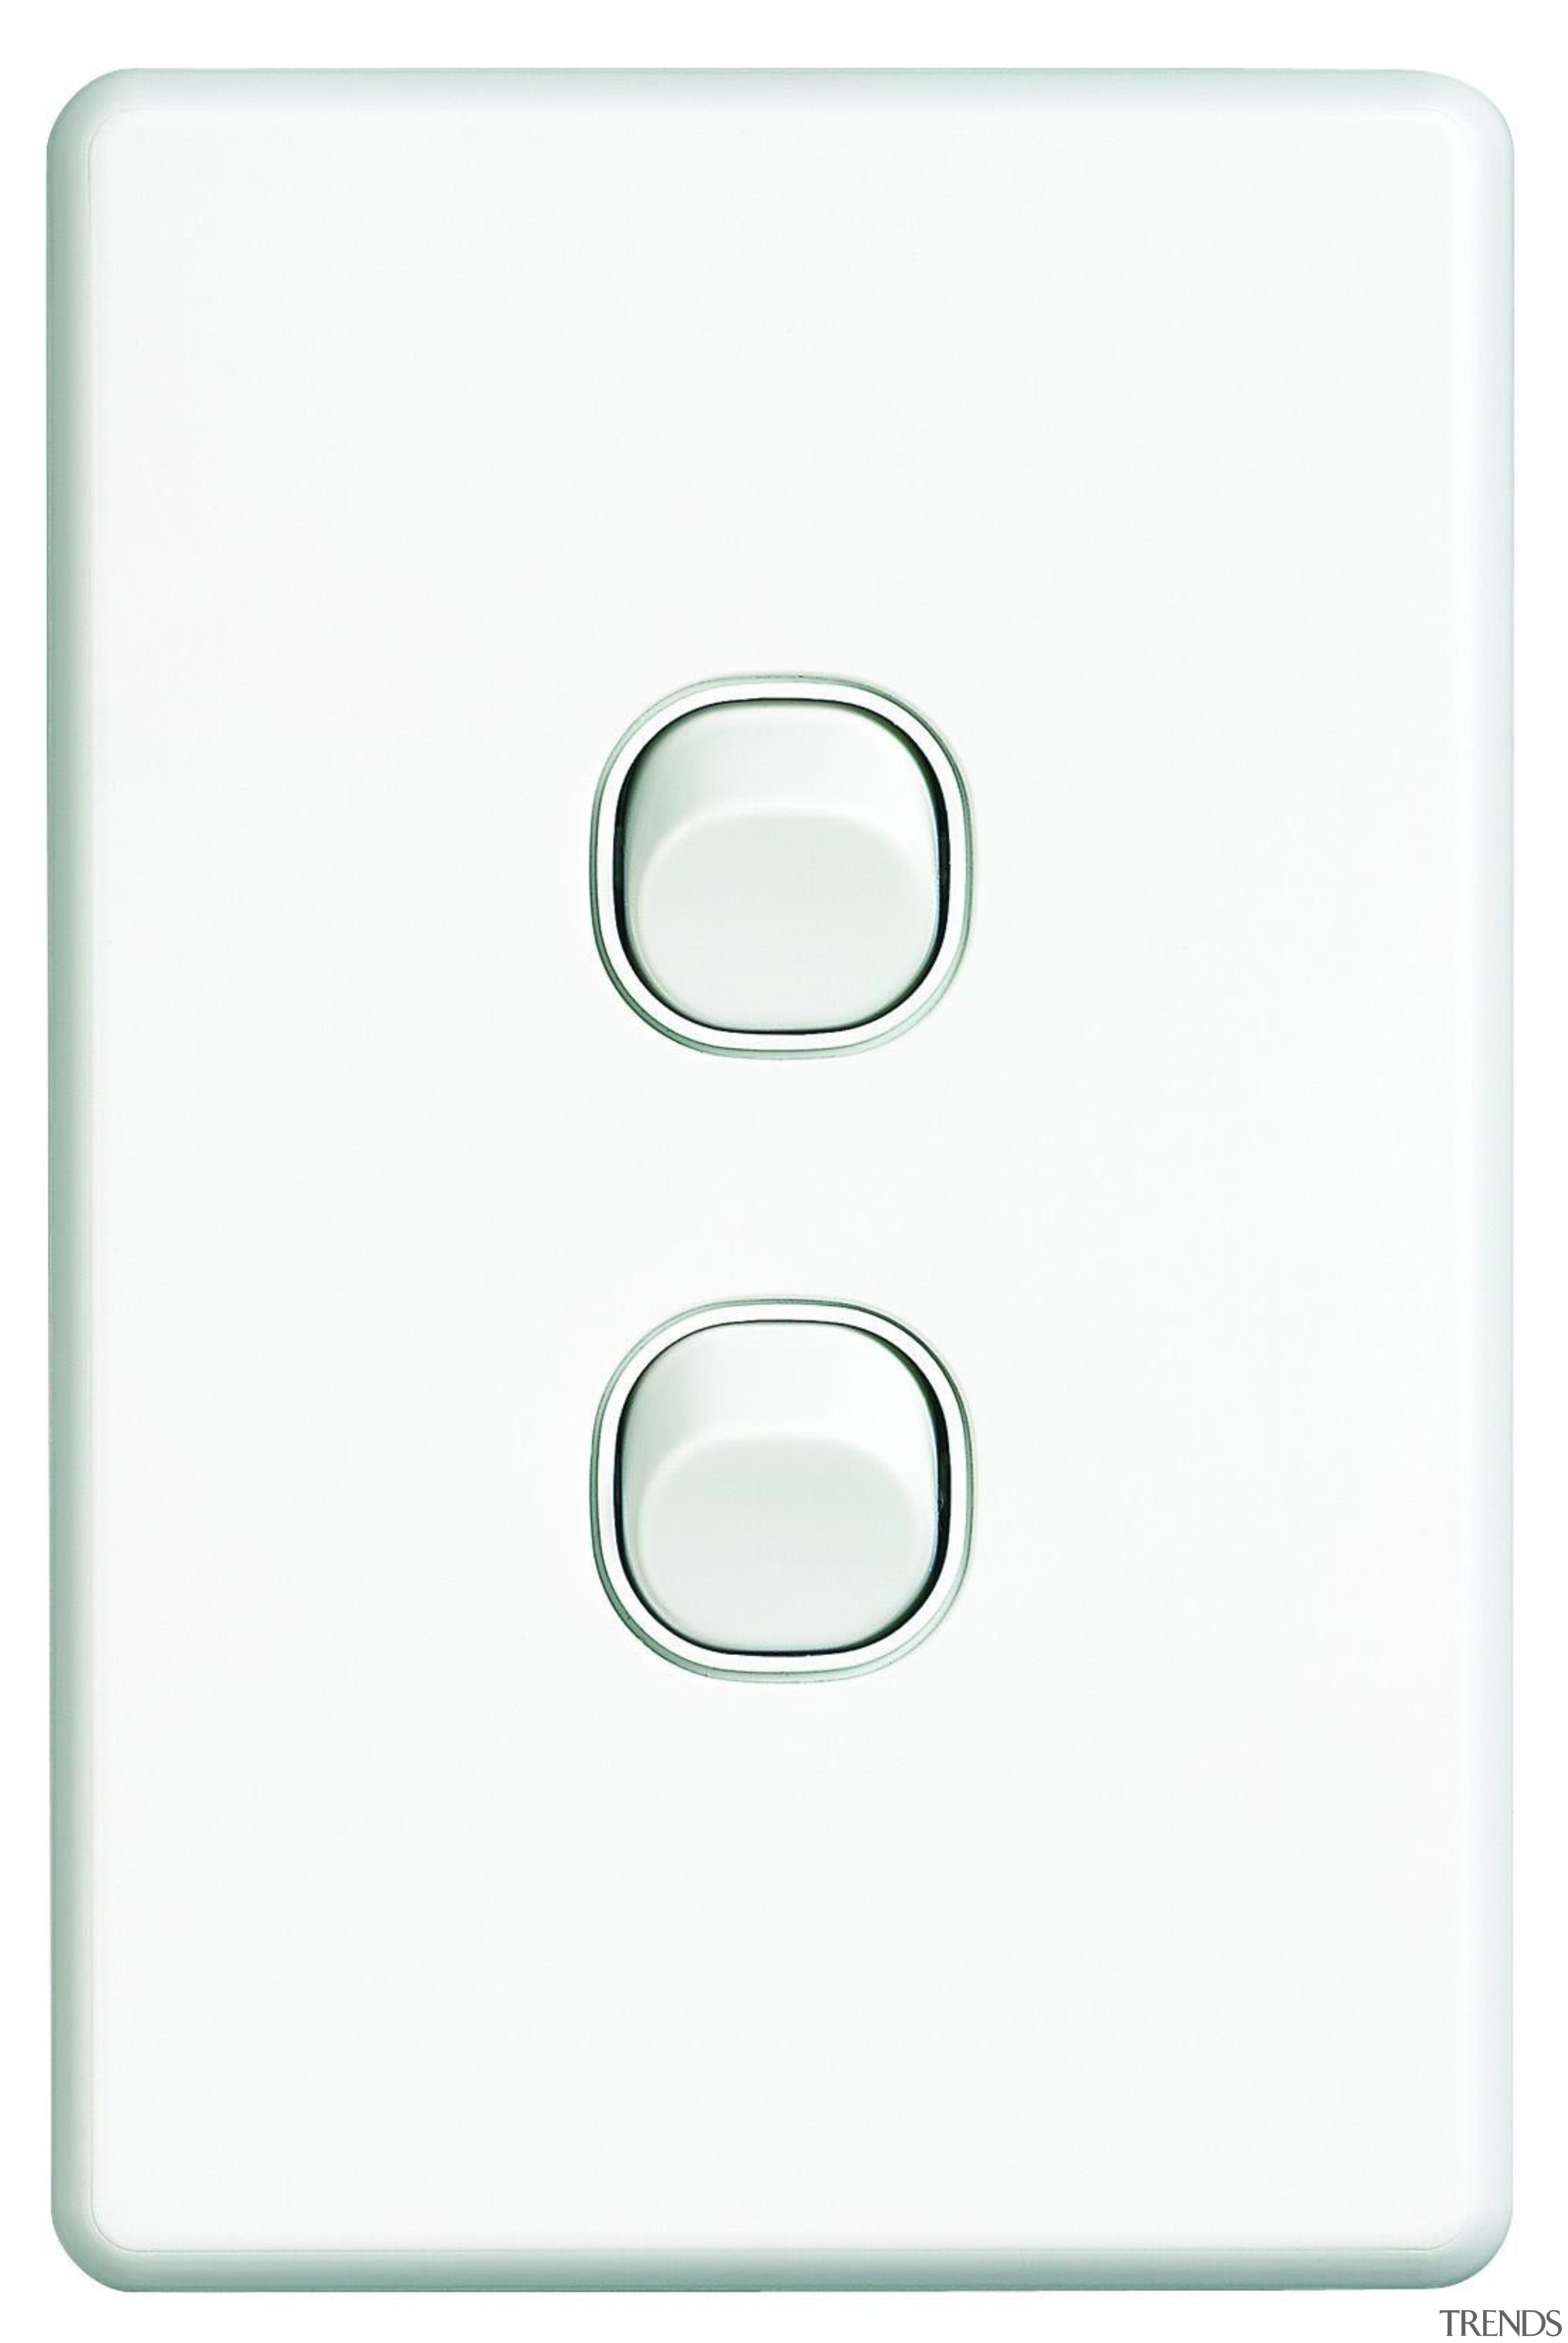 Slimline Series double switch White - SC2032 - light switch, product, switch, technology, white